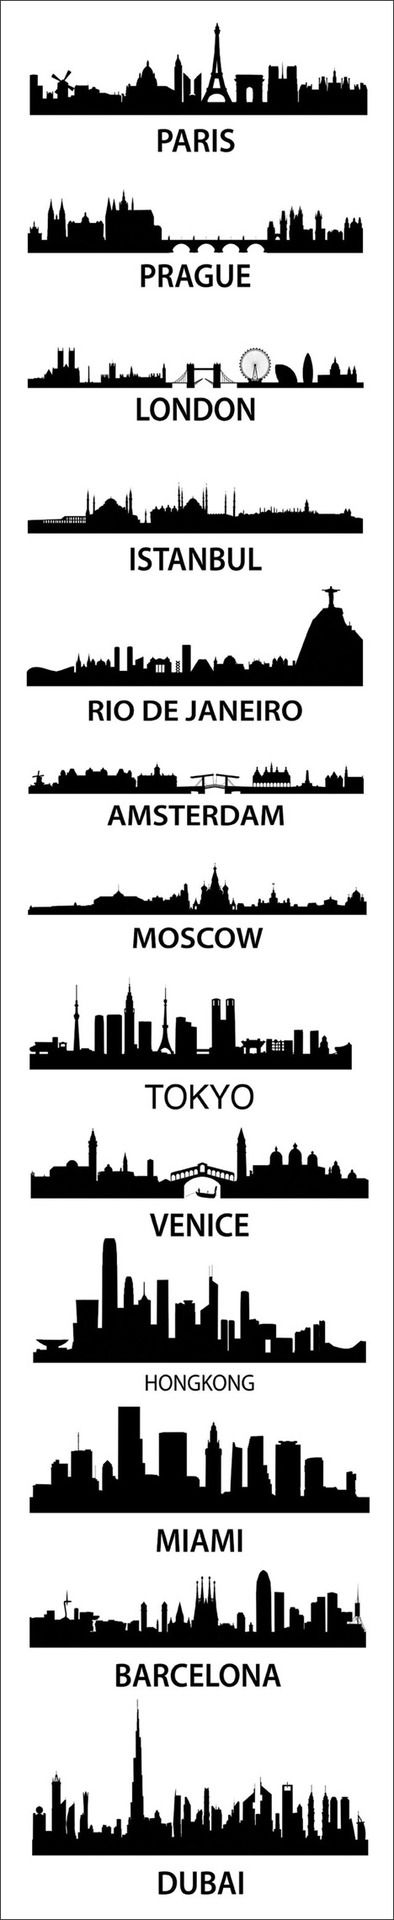 cities of the world #skyline #city